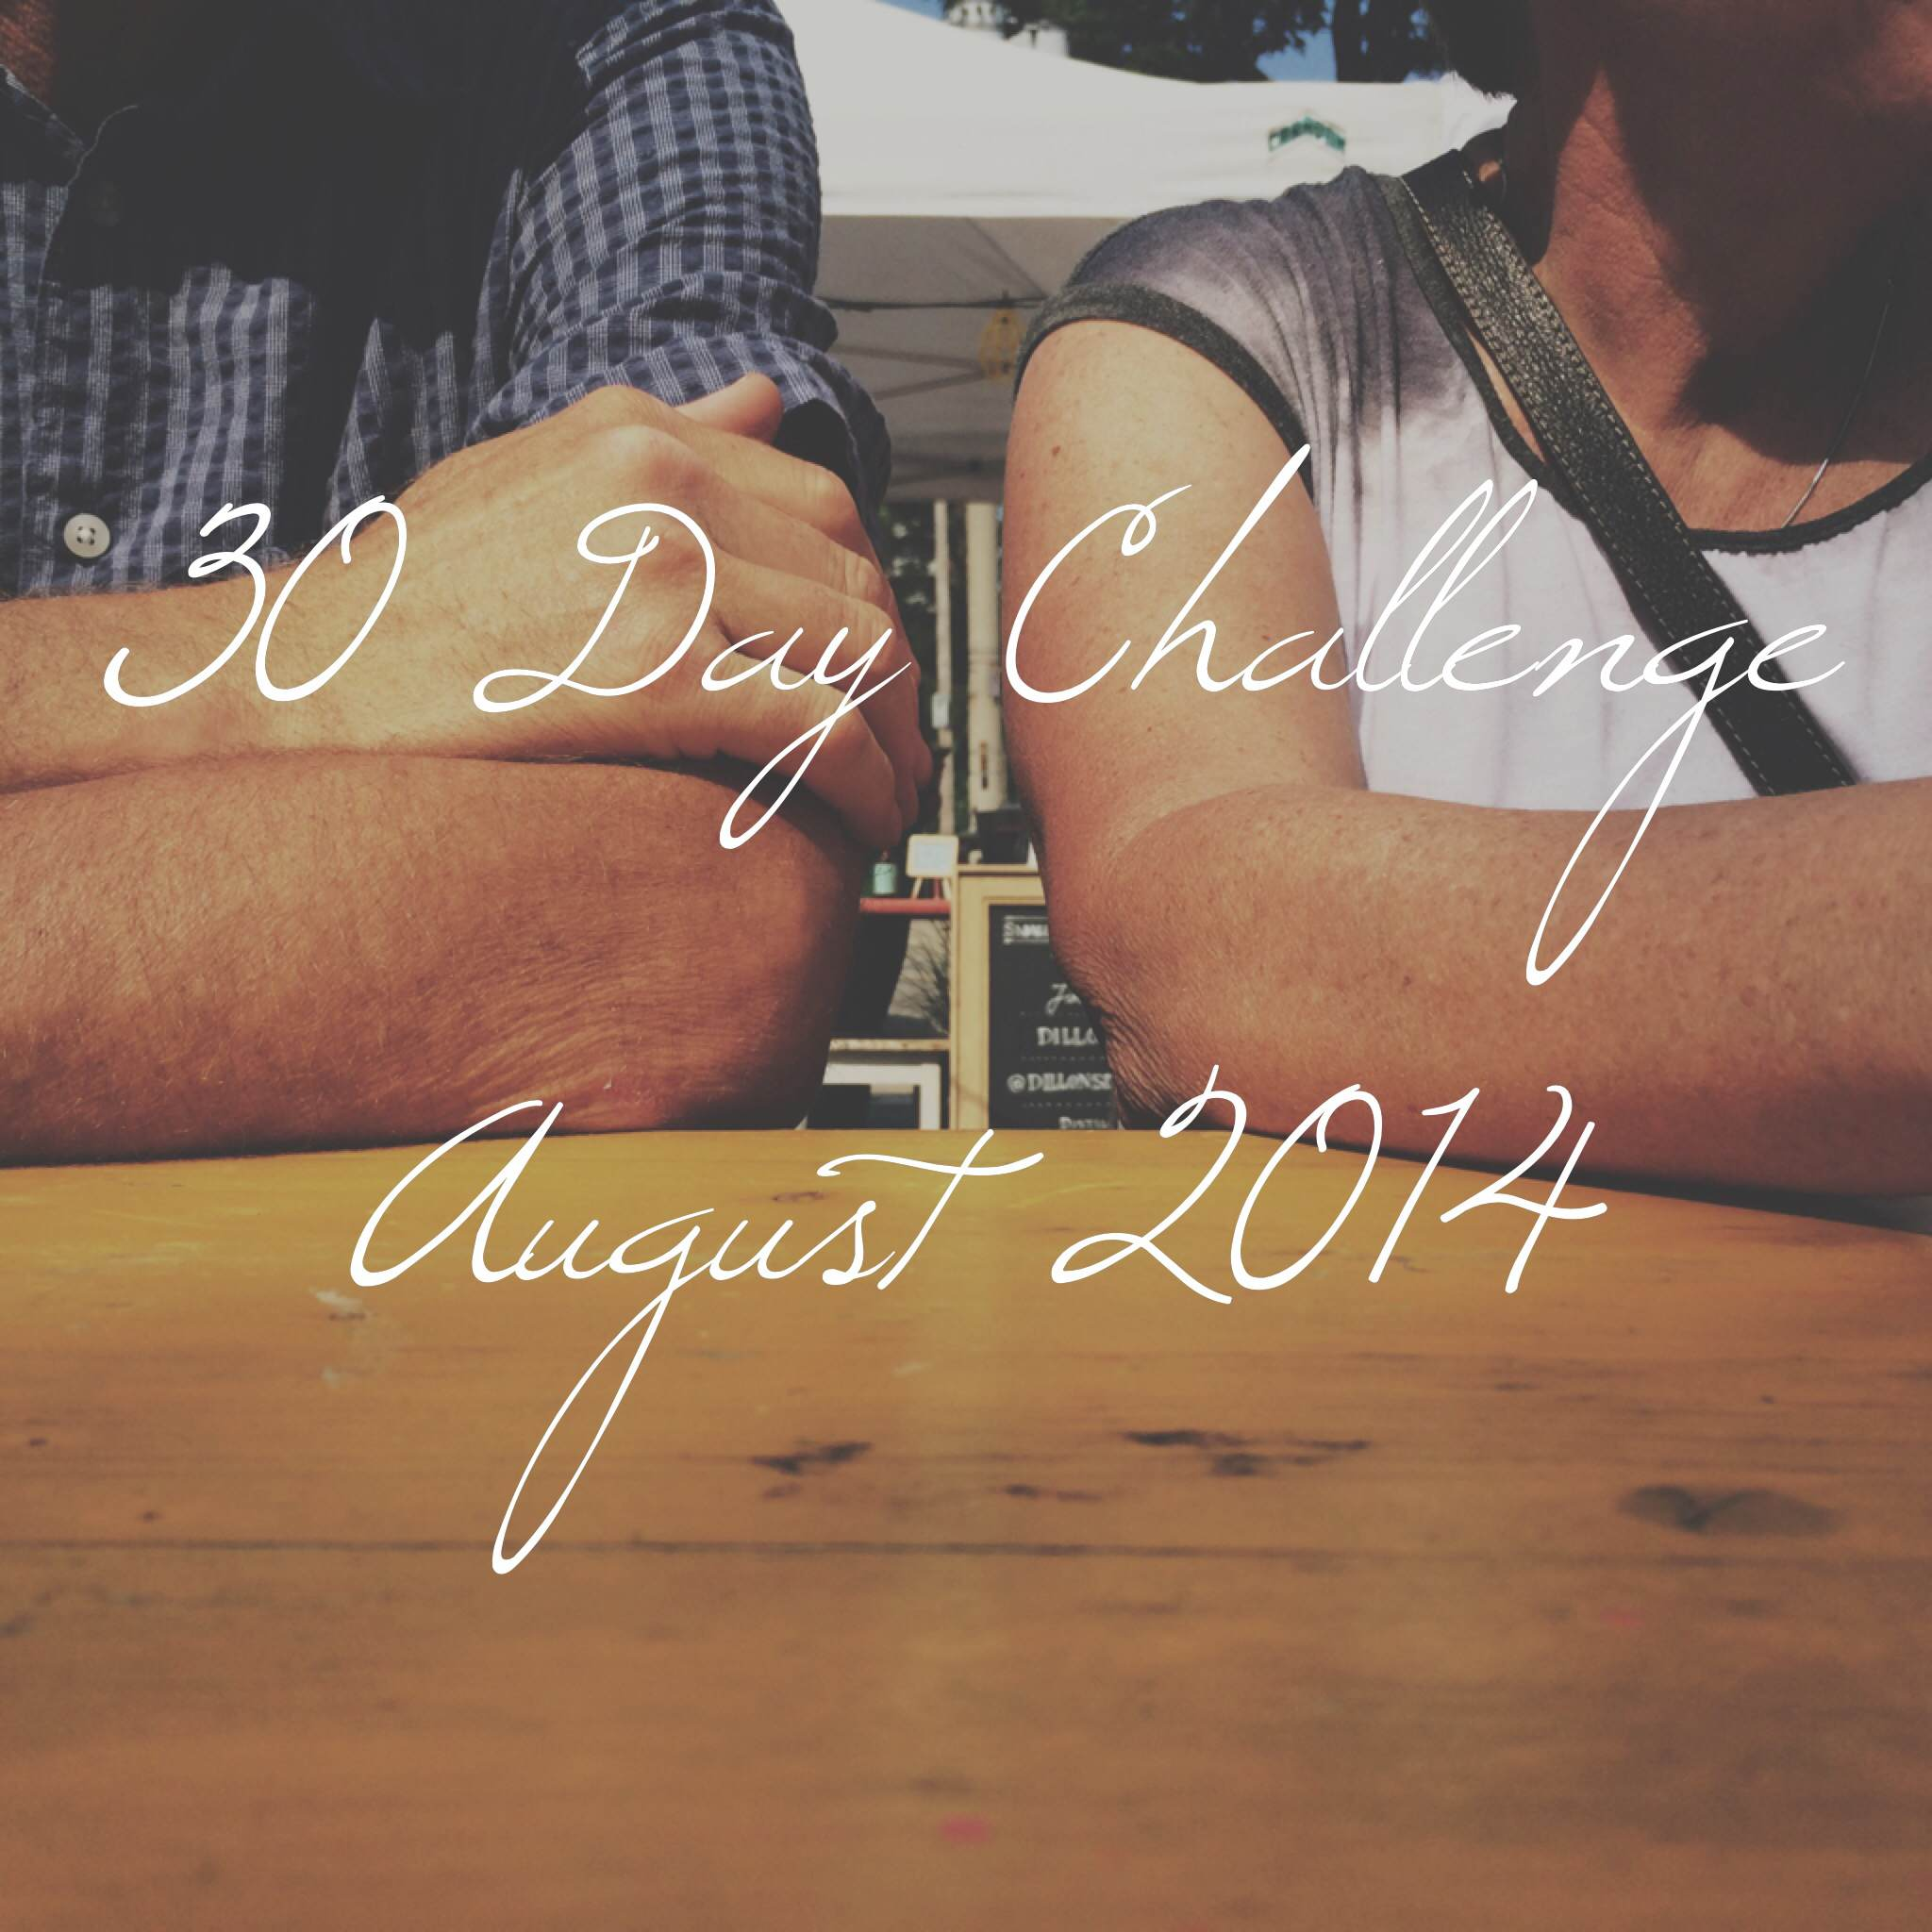 30 Day Challenge August